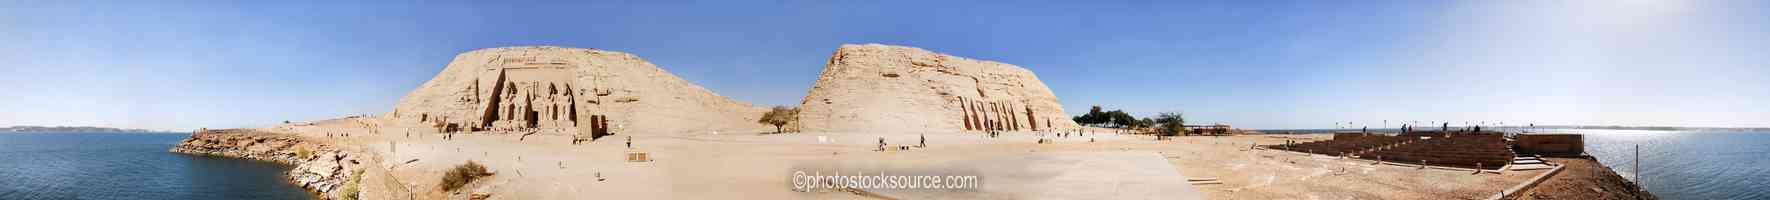 Abu Simbel and Hathor Temples